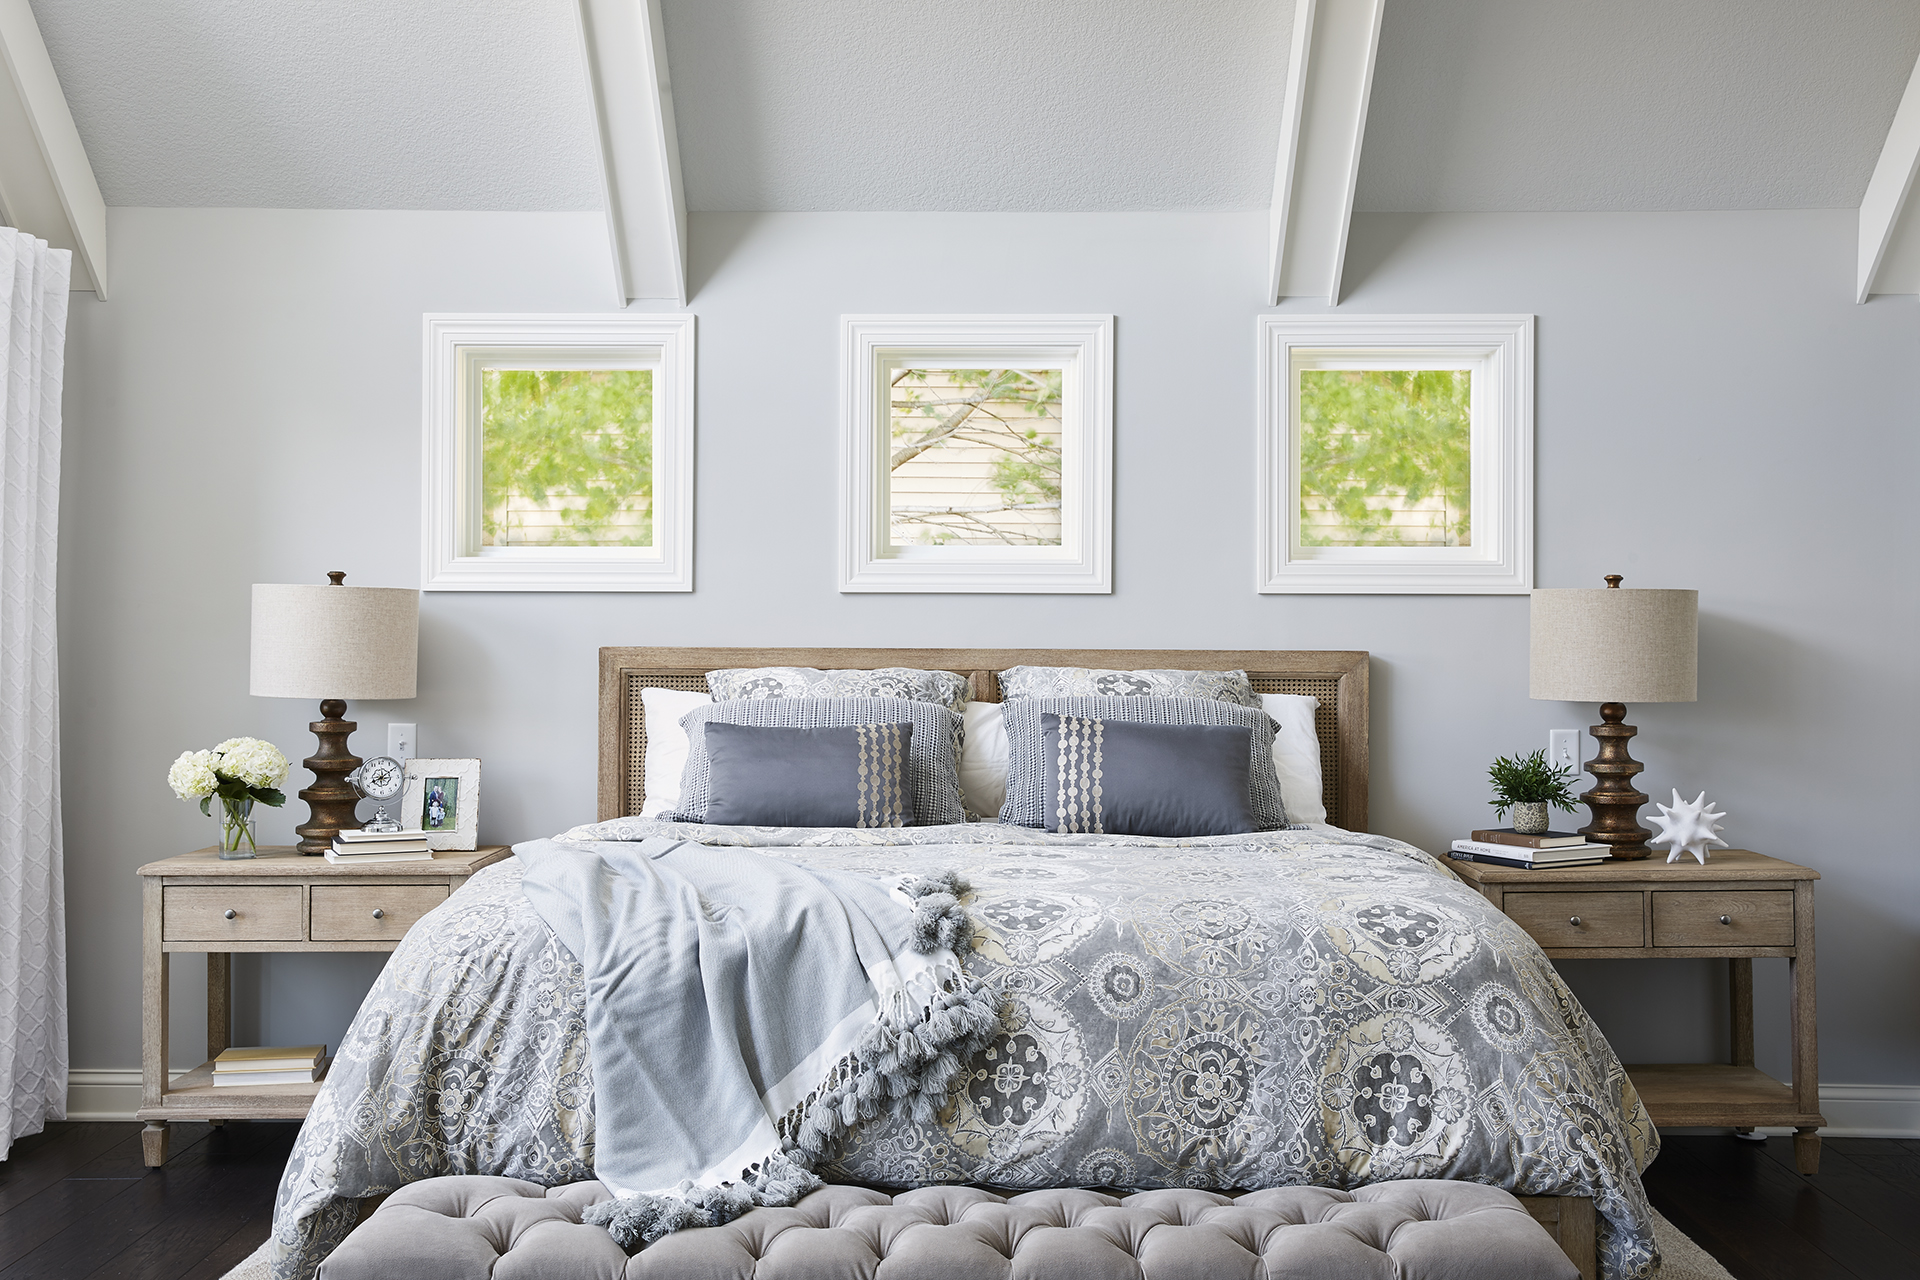 In this master bedroom that overlooks the trees, shades of blue help to connect the space with the outdoors and emphasize the style of true lake living. / Design by Sneak Peek Design